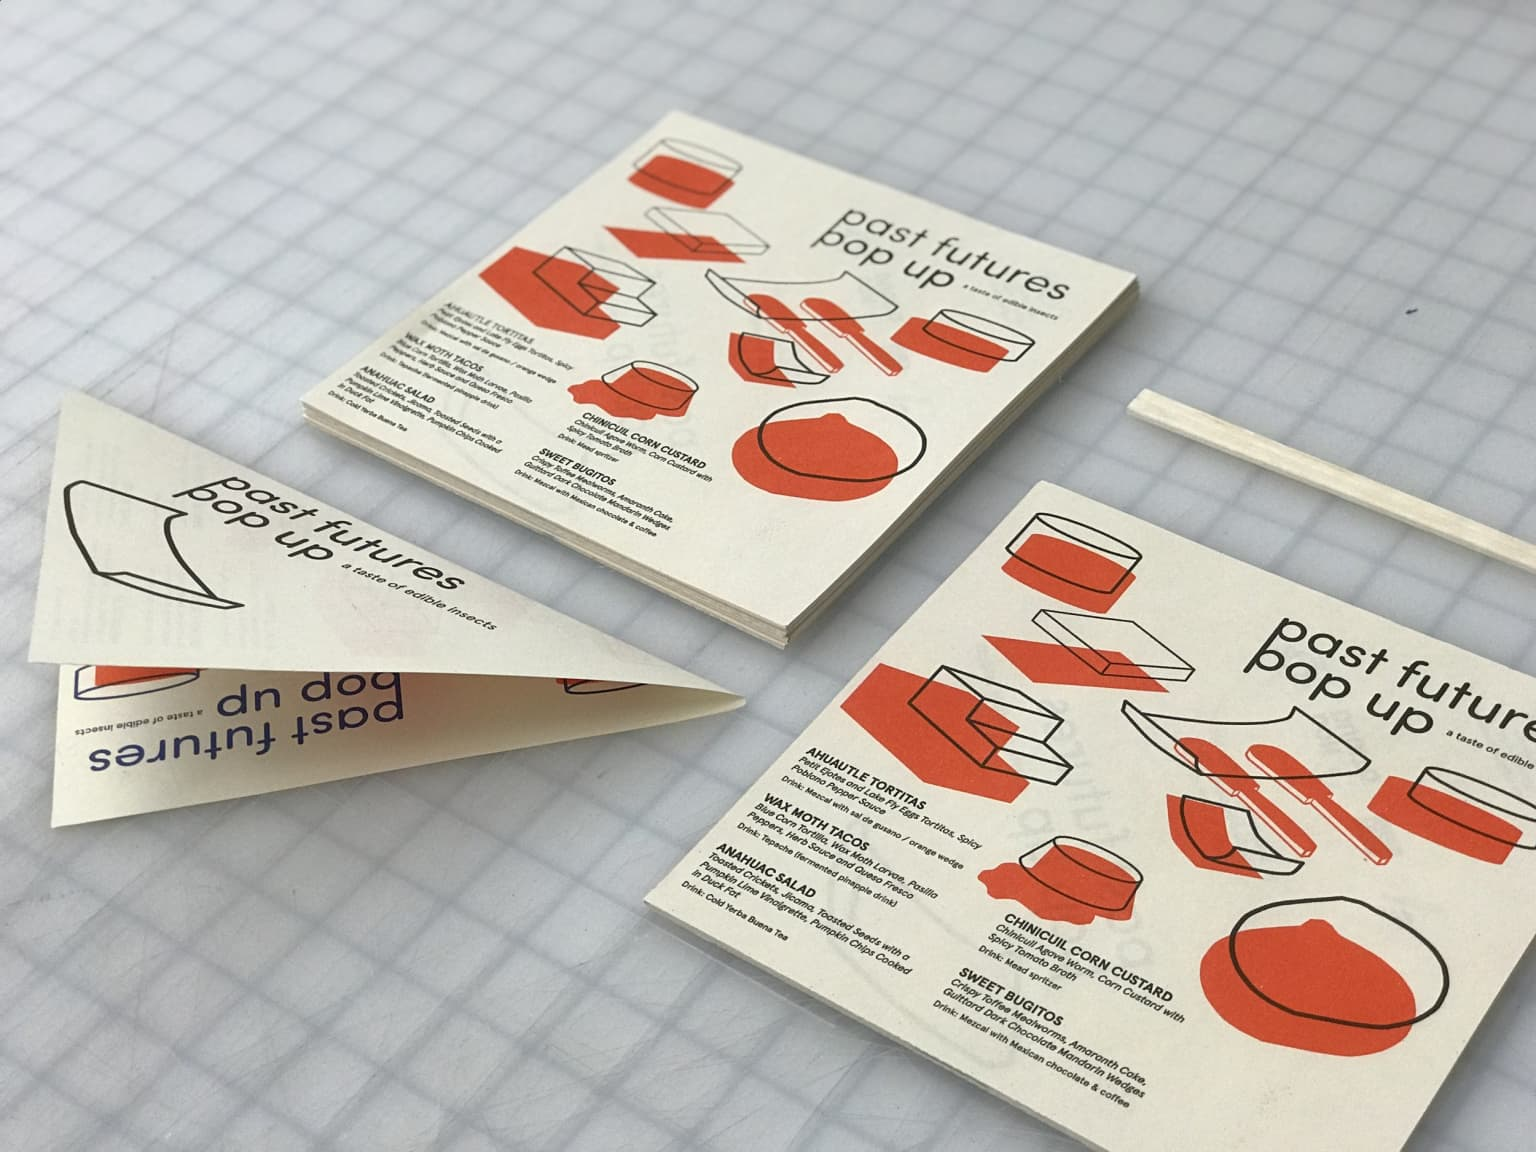 Past Futures / visual identity for an Edible Insect Dinner